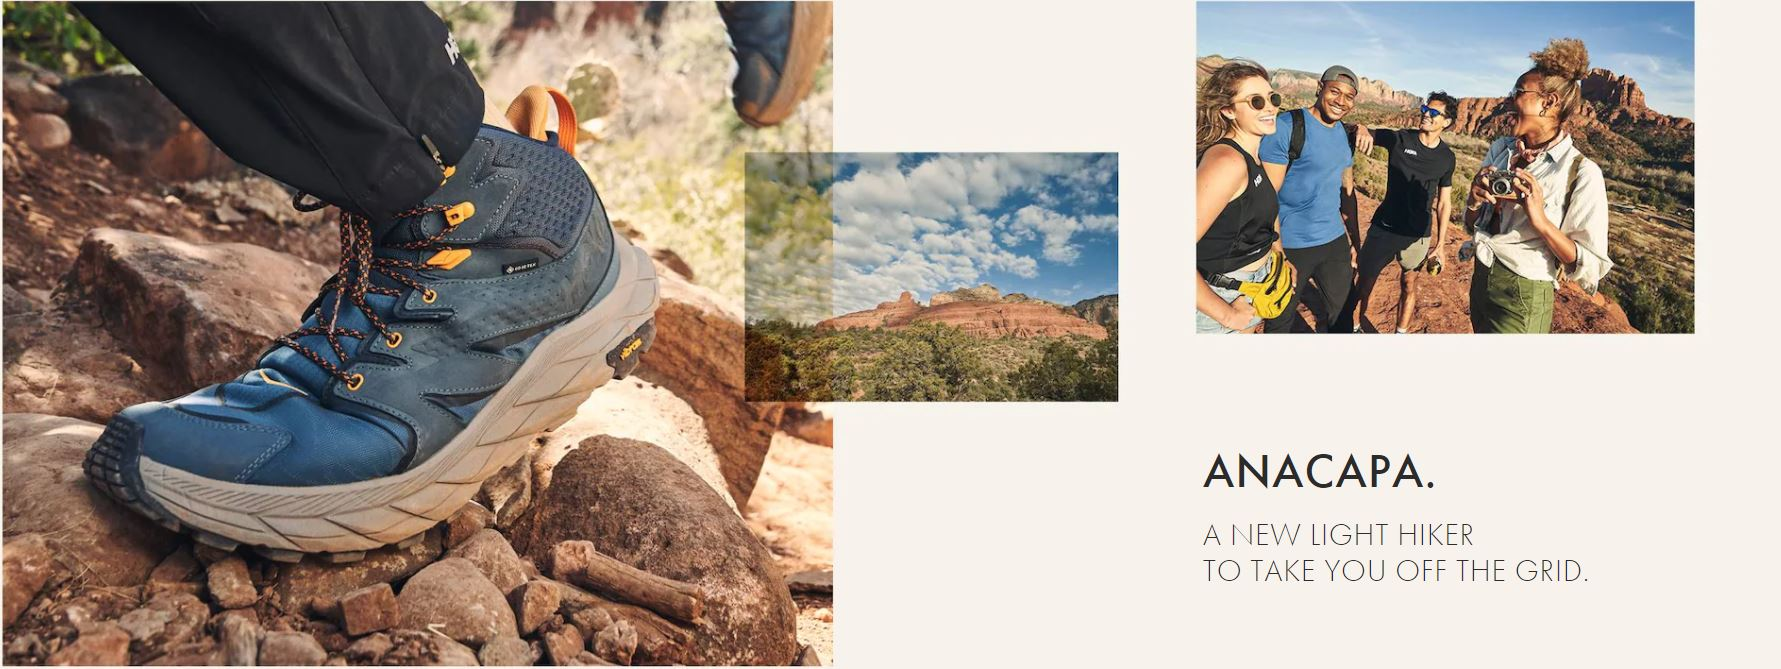 A new kind of boot made for a different kind of hiker.  It feels like wearing a cushioned, comfy shoe, but has the protection you need to get out and back for today's adventure.